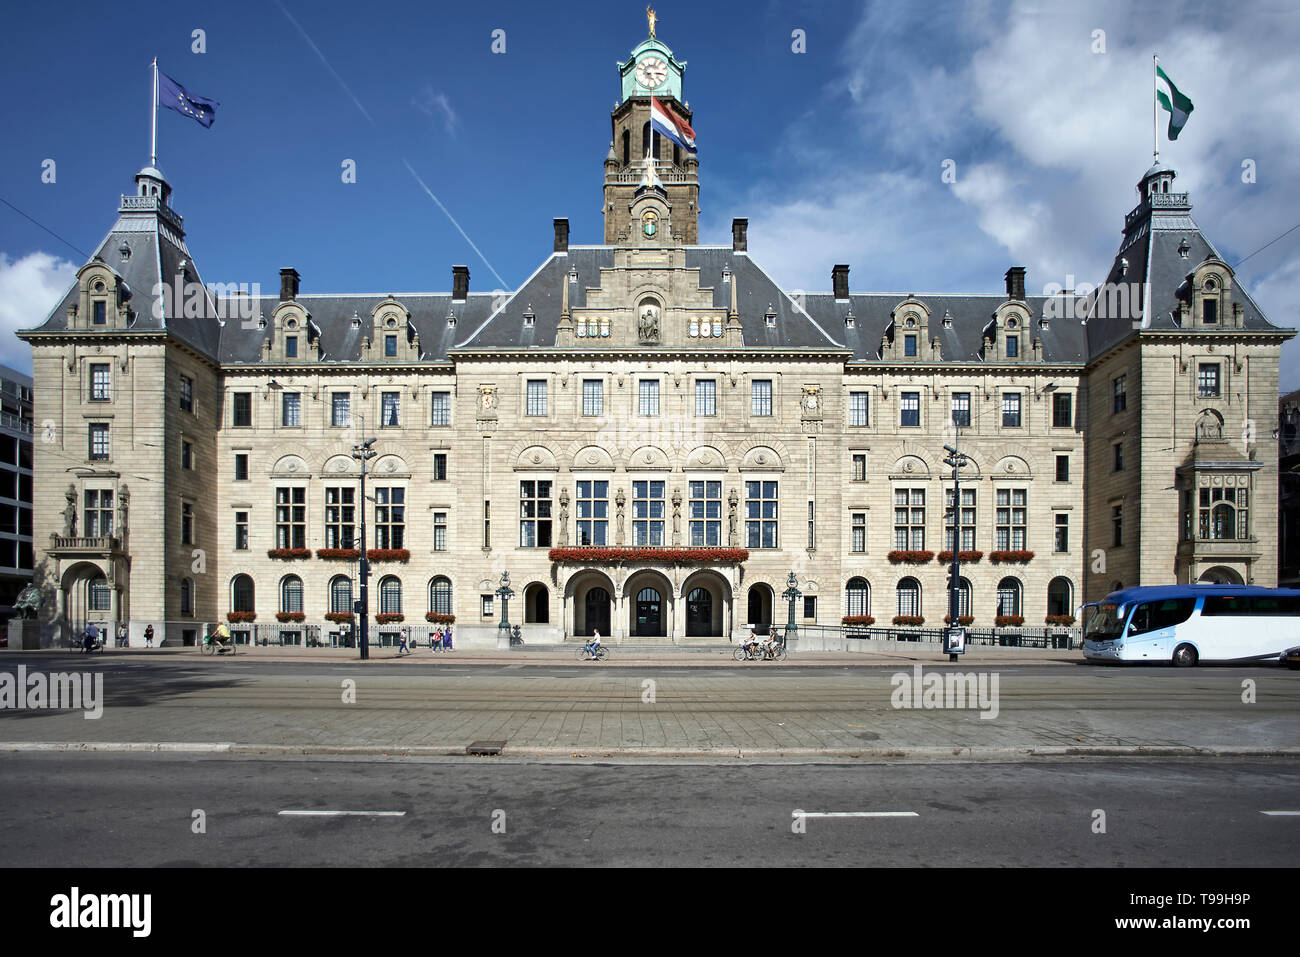 City hall of the city of Rotterdam in summer sunshine - Stock Image